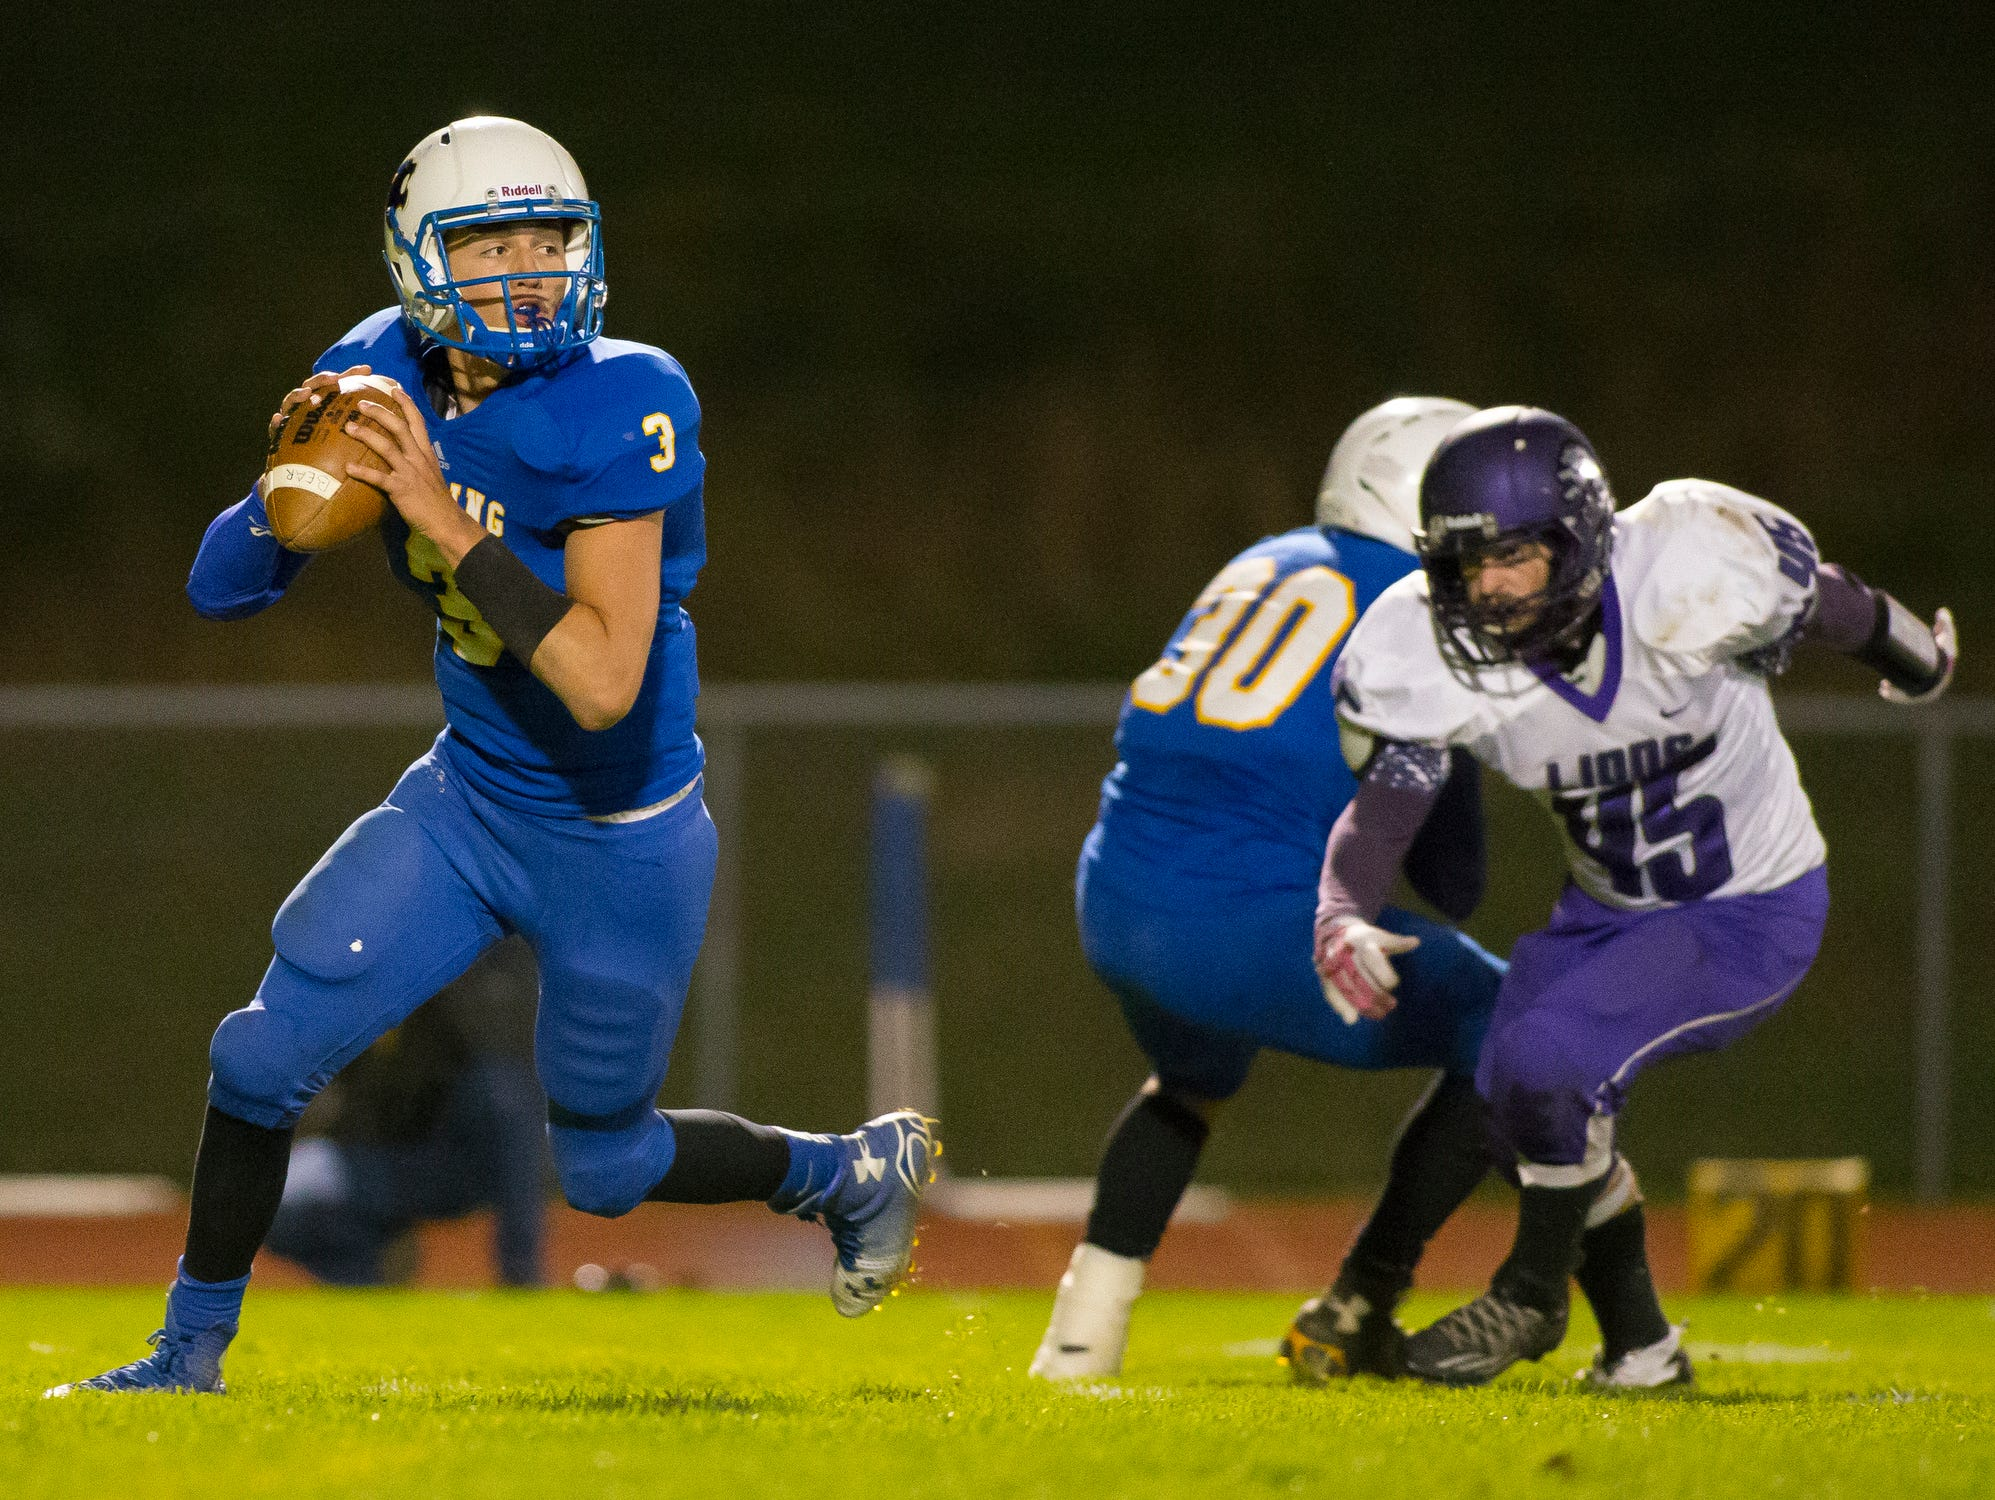 Lansing freshman quarterback Mason Boothe goes back to pass on Friday during the Bobcats' 18-13 defeat of visiting Dryden in a Section 4 Division V clash at Sobus Field. Boothe scored the Bobcats' third touchdown on a 1-yard run in the third quarter.